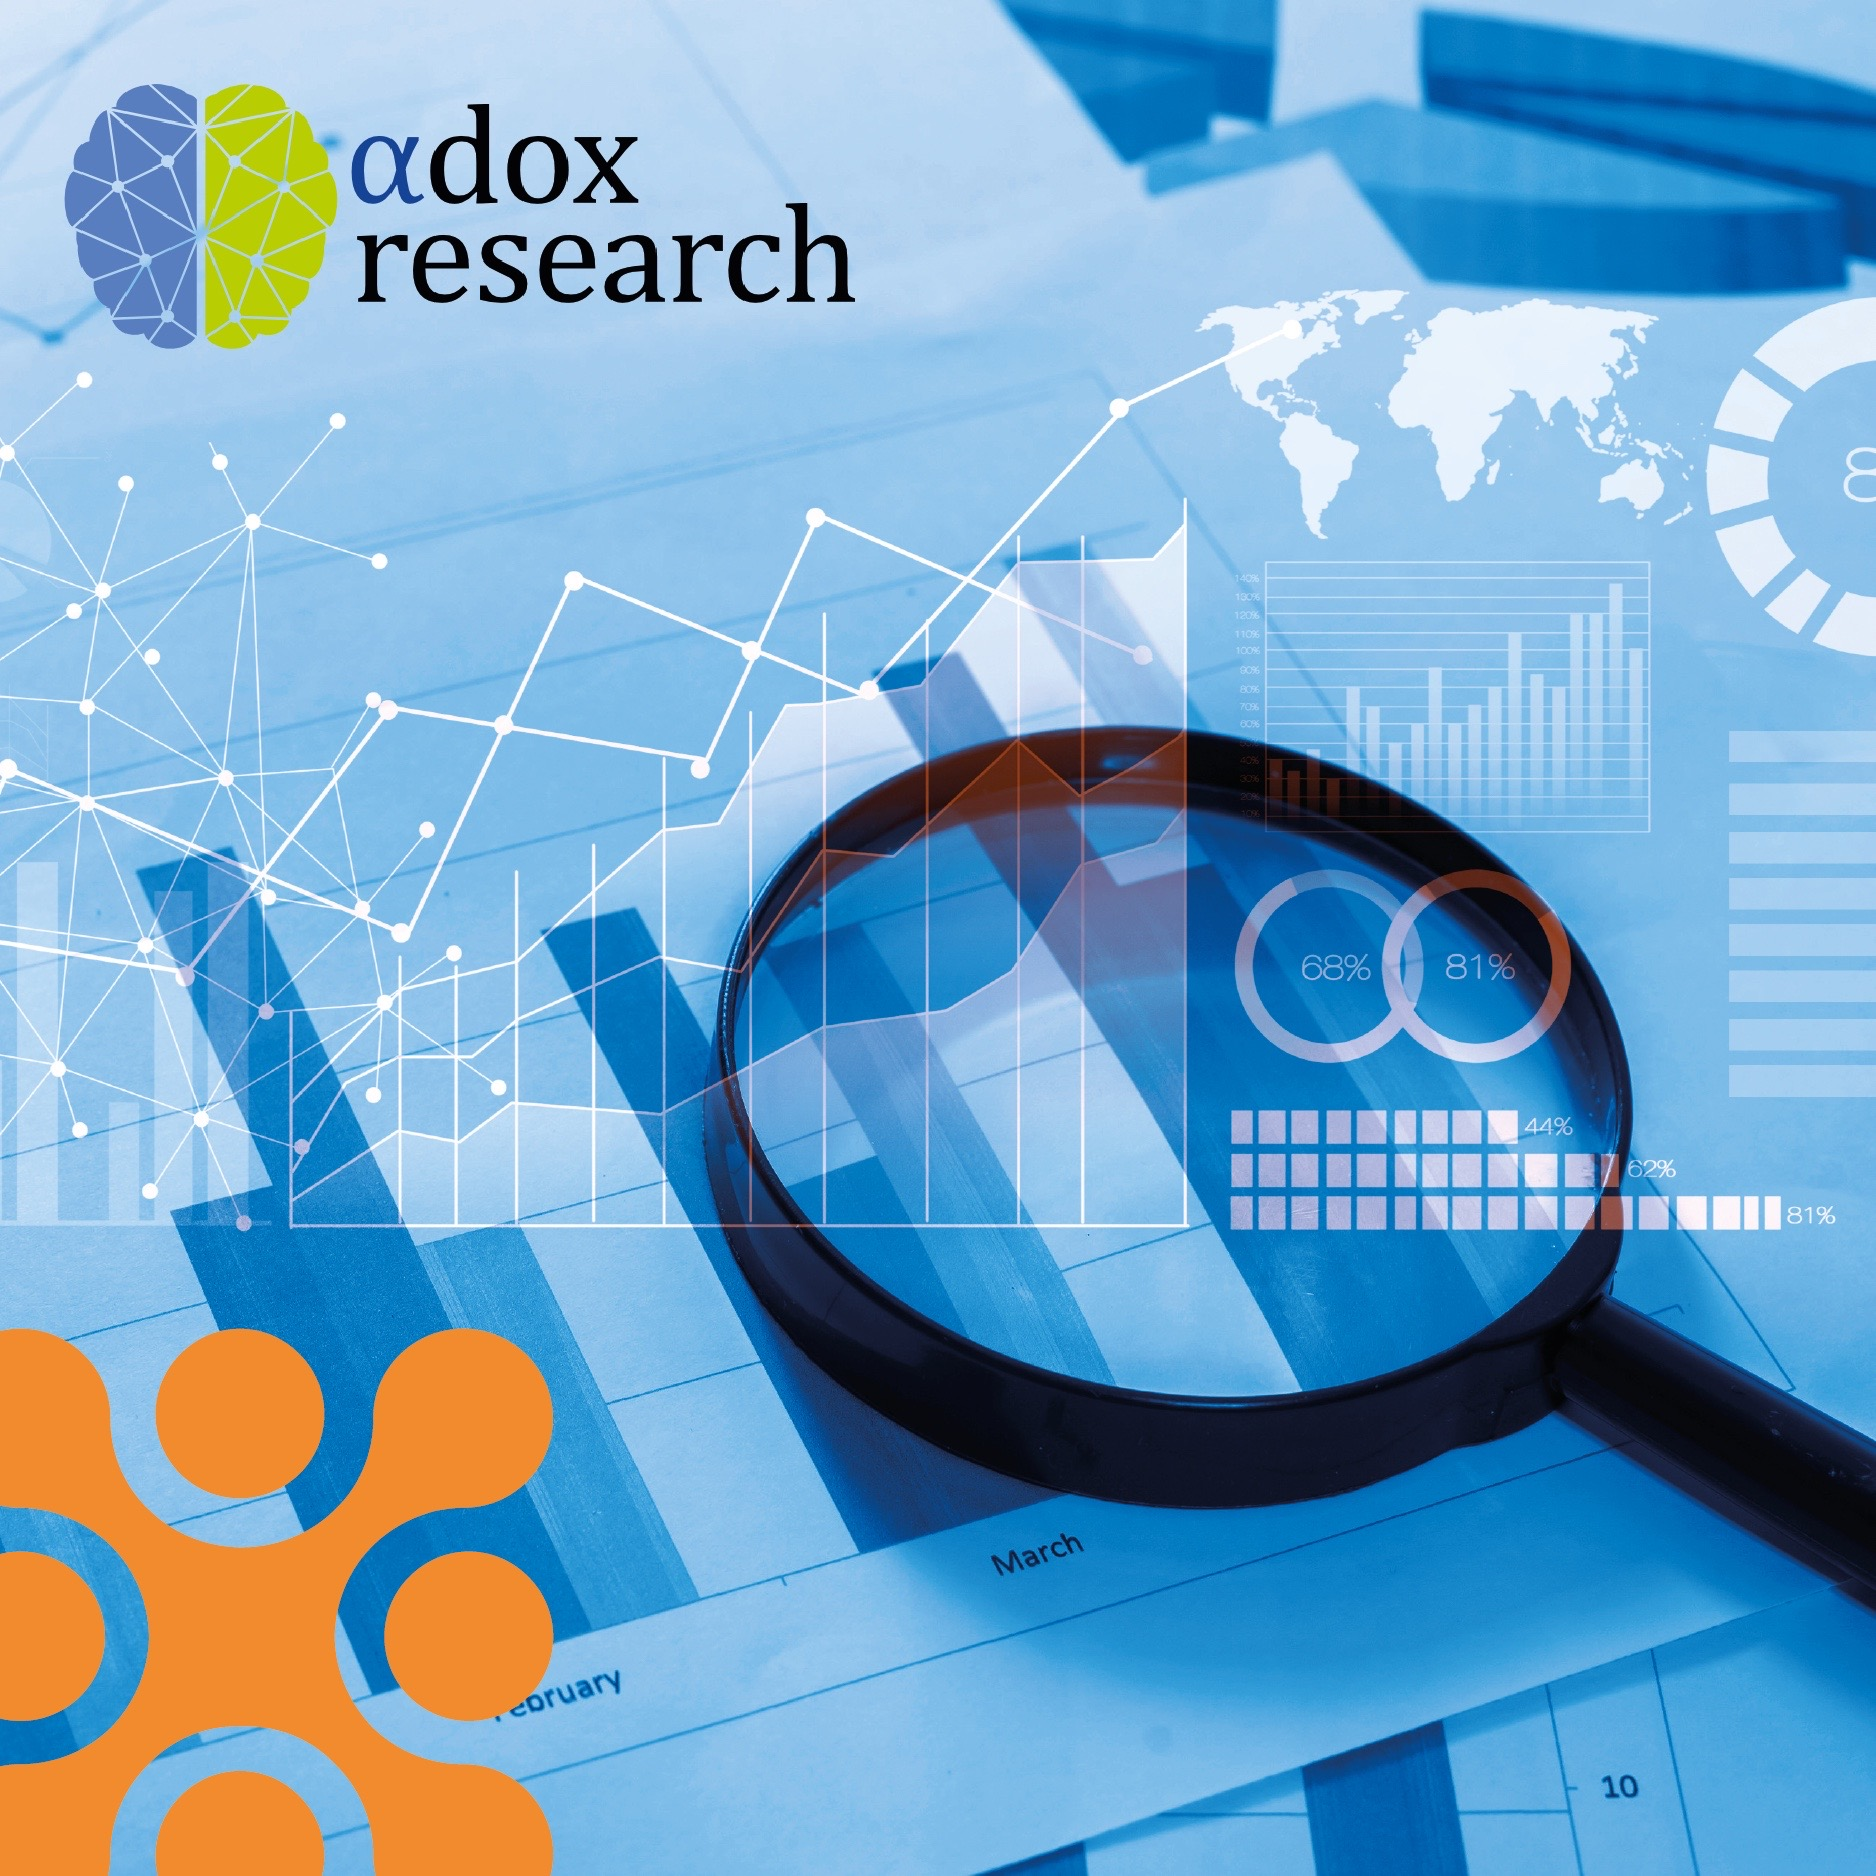 Webinar: Gresham and Adox Research discuss Fast and Open data